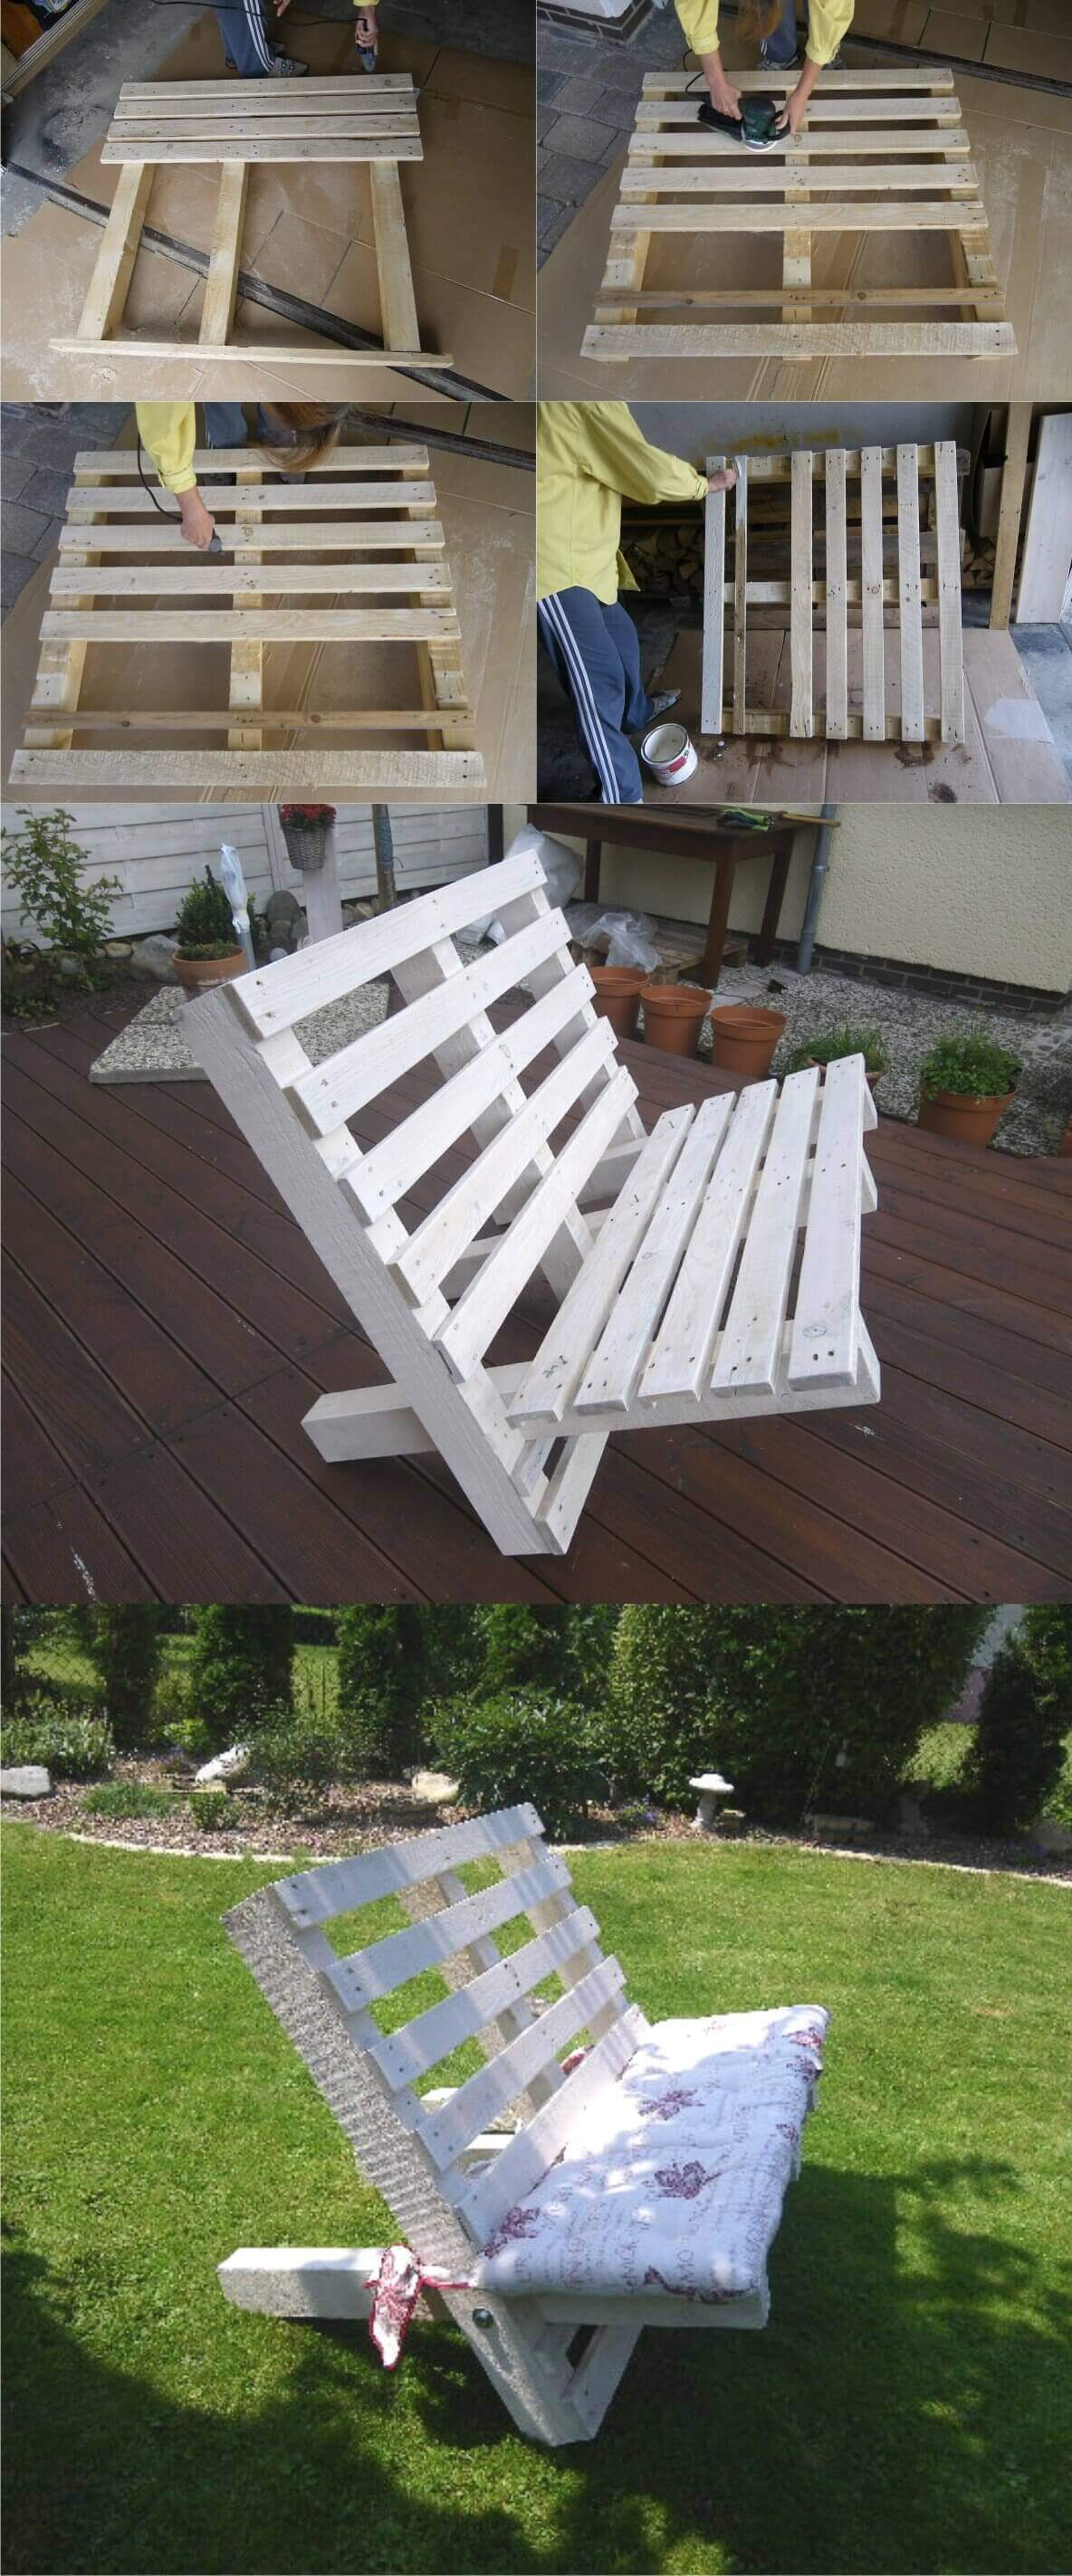 DECORANDO CON PALETS DE MADERA Y CAJAS - Página 20 04-diy-outdoor-furniture-projects-ideas-homebnc